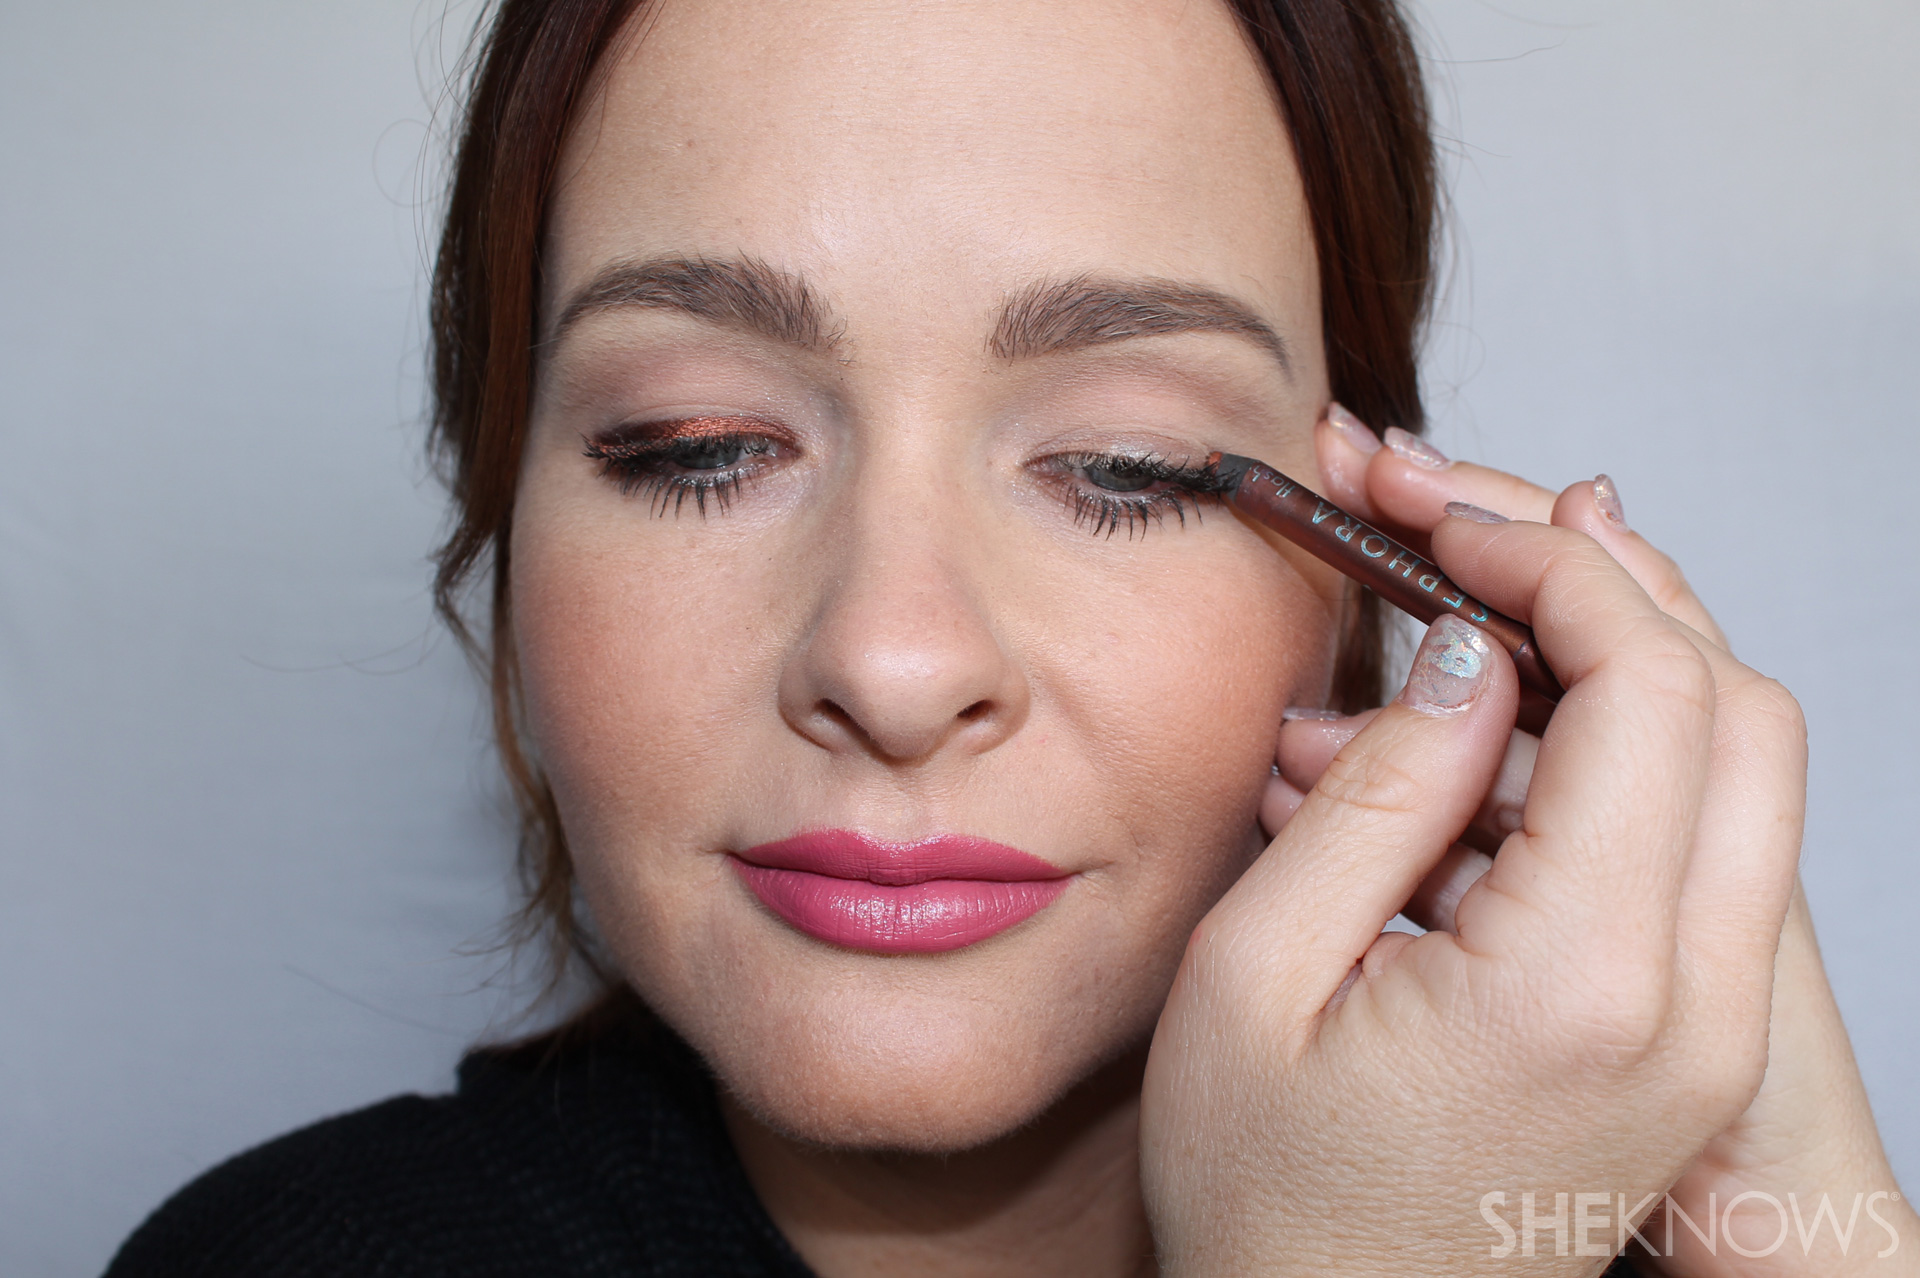 Top Lid Step 2: Apply to other eye